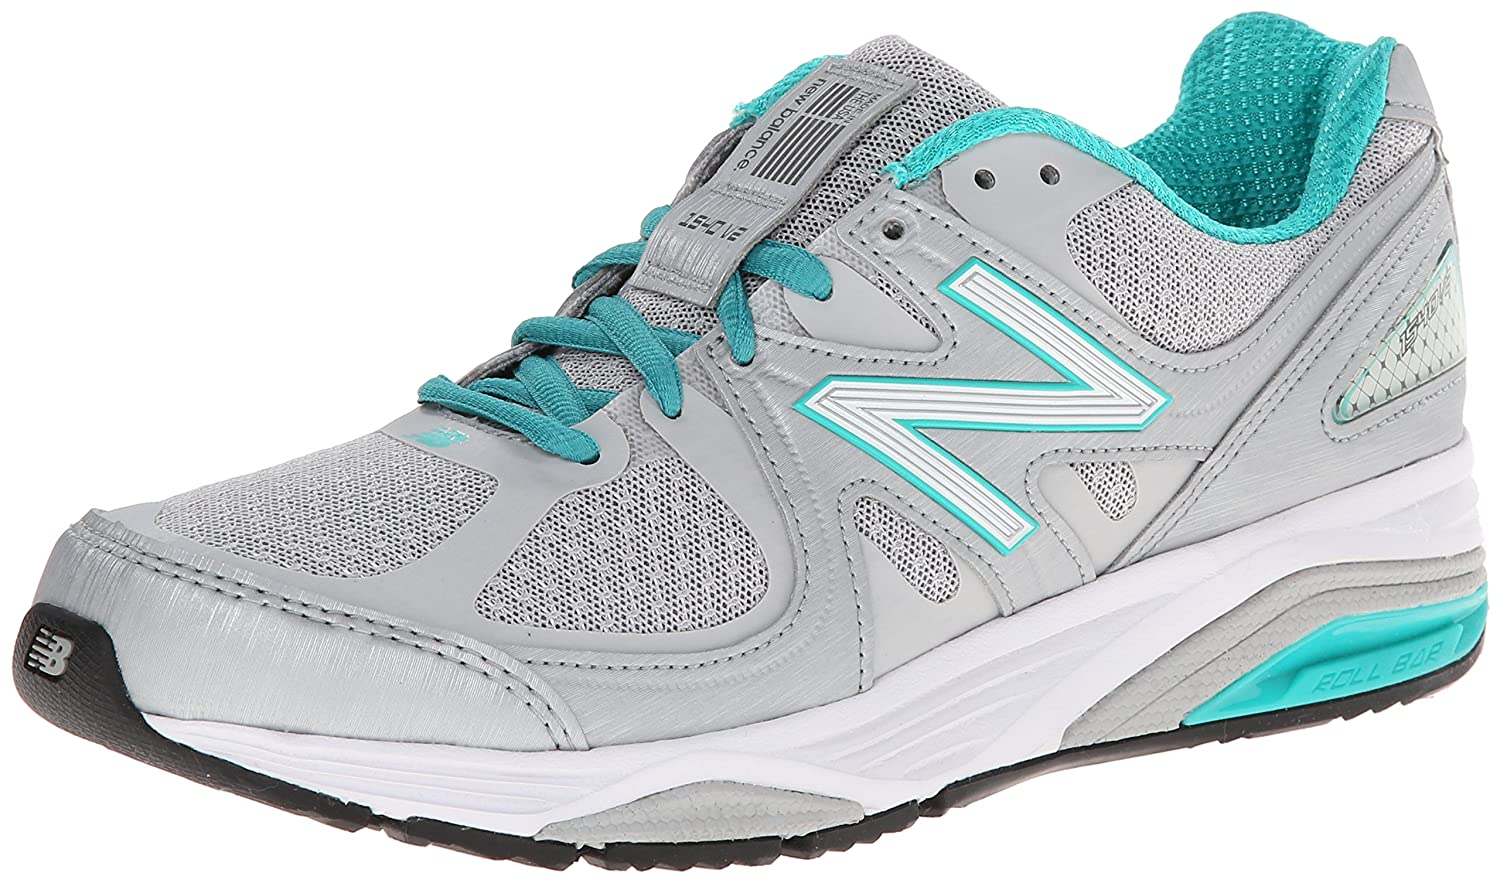 New Balance Women's W1540V2 Running Shoe B00IZC6S9W 6.5 D US|Silver/Green